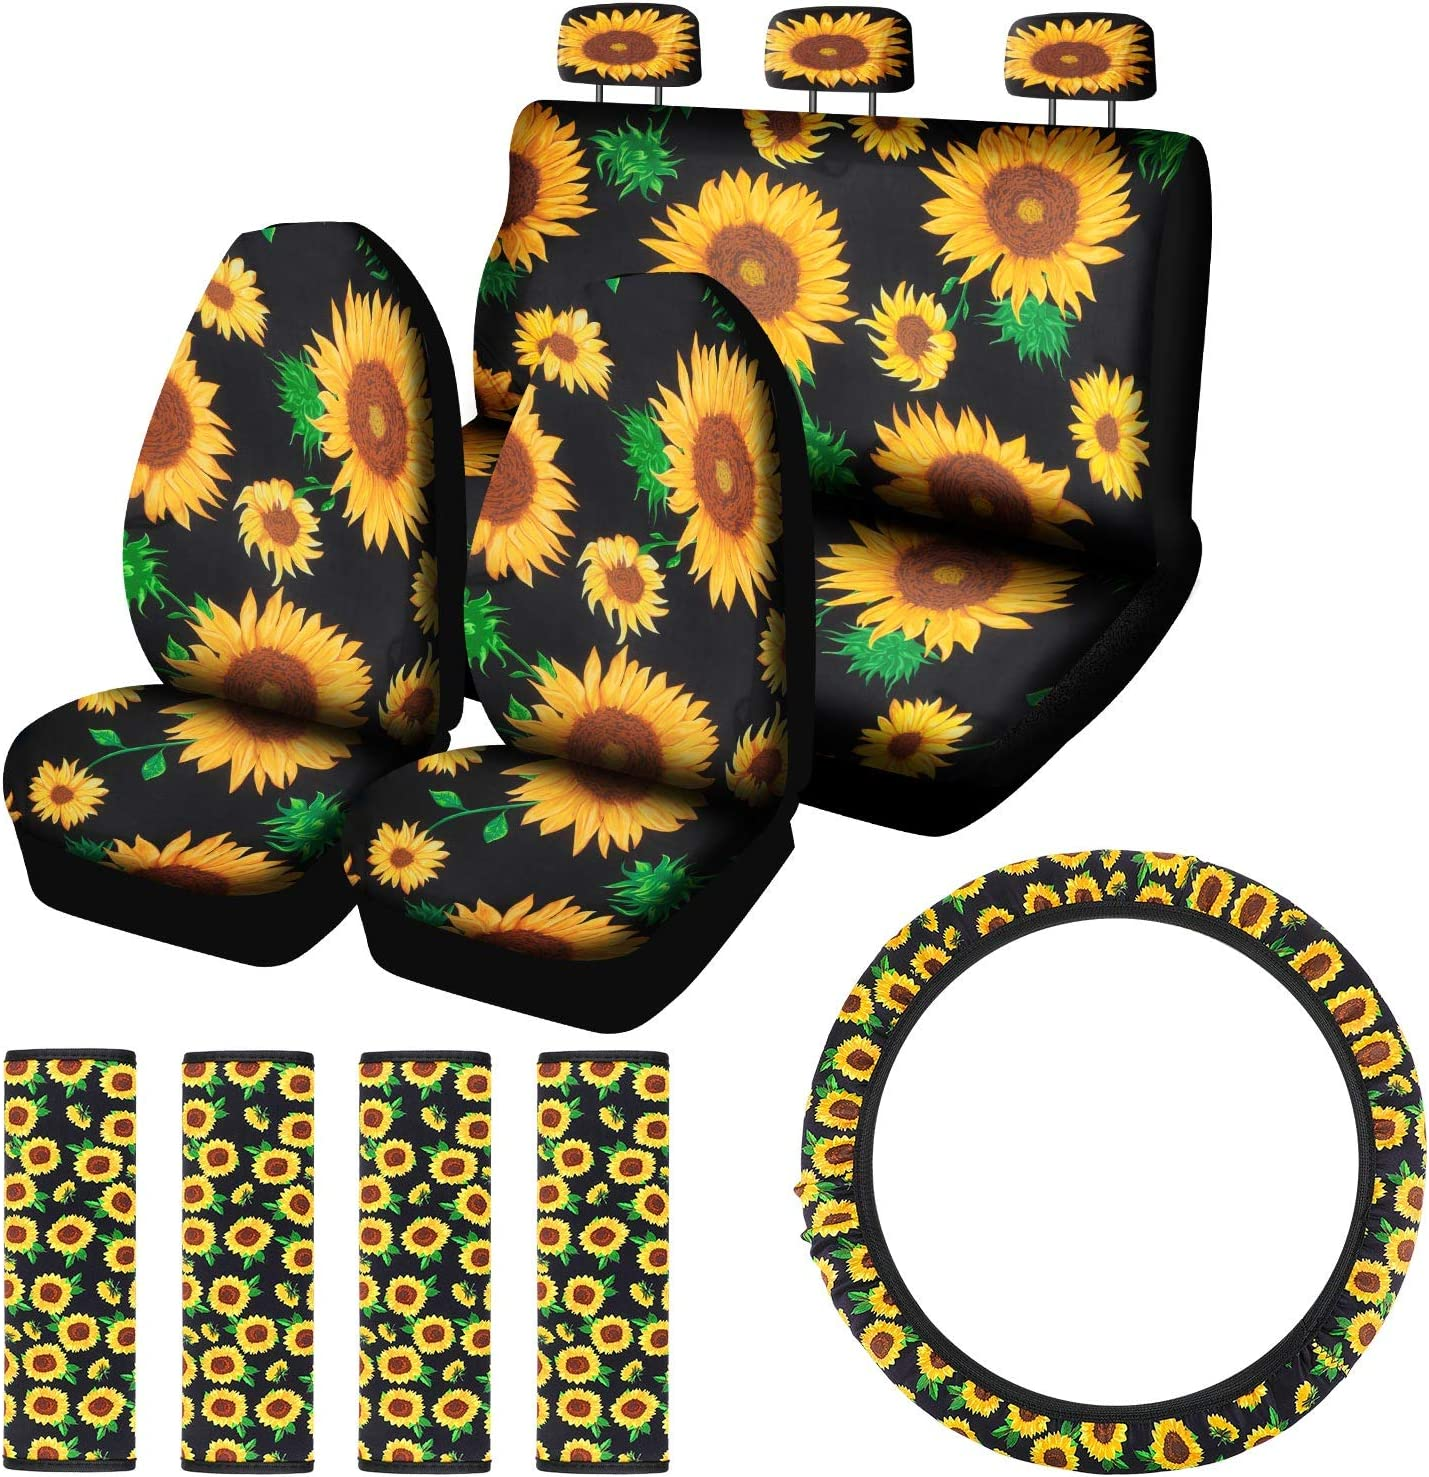 BBTO 8 Pieces Sunflower Car Accessories Set 7 Pieces Sunflower Car Front Seat Covers and Car Steering Wheel Cover for Auto Decoration